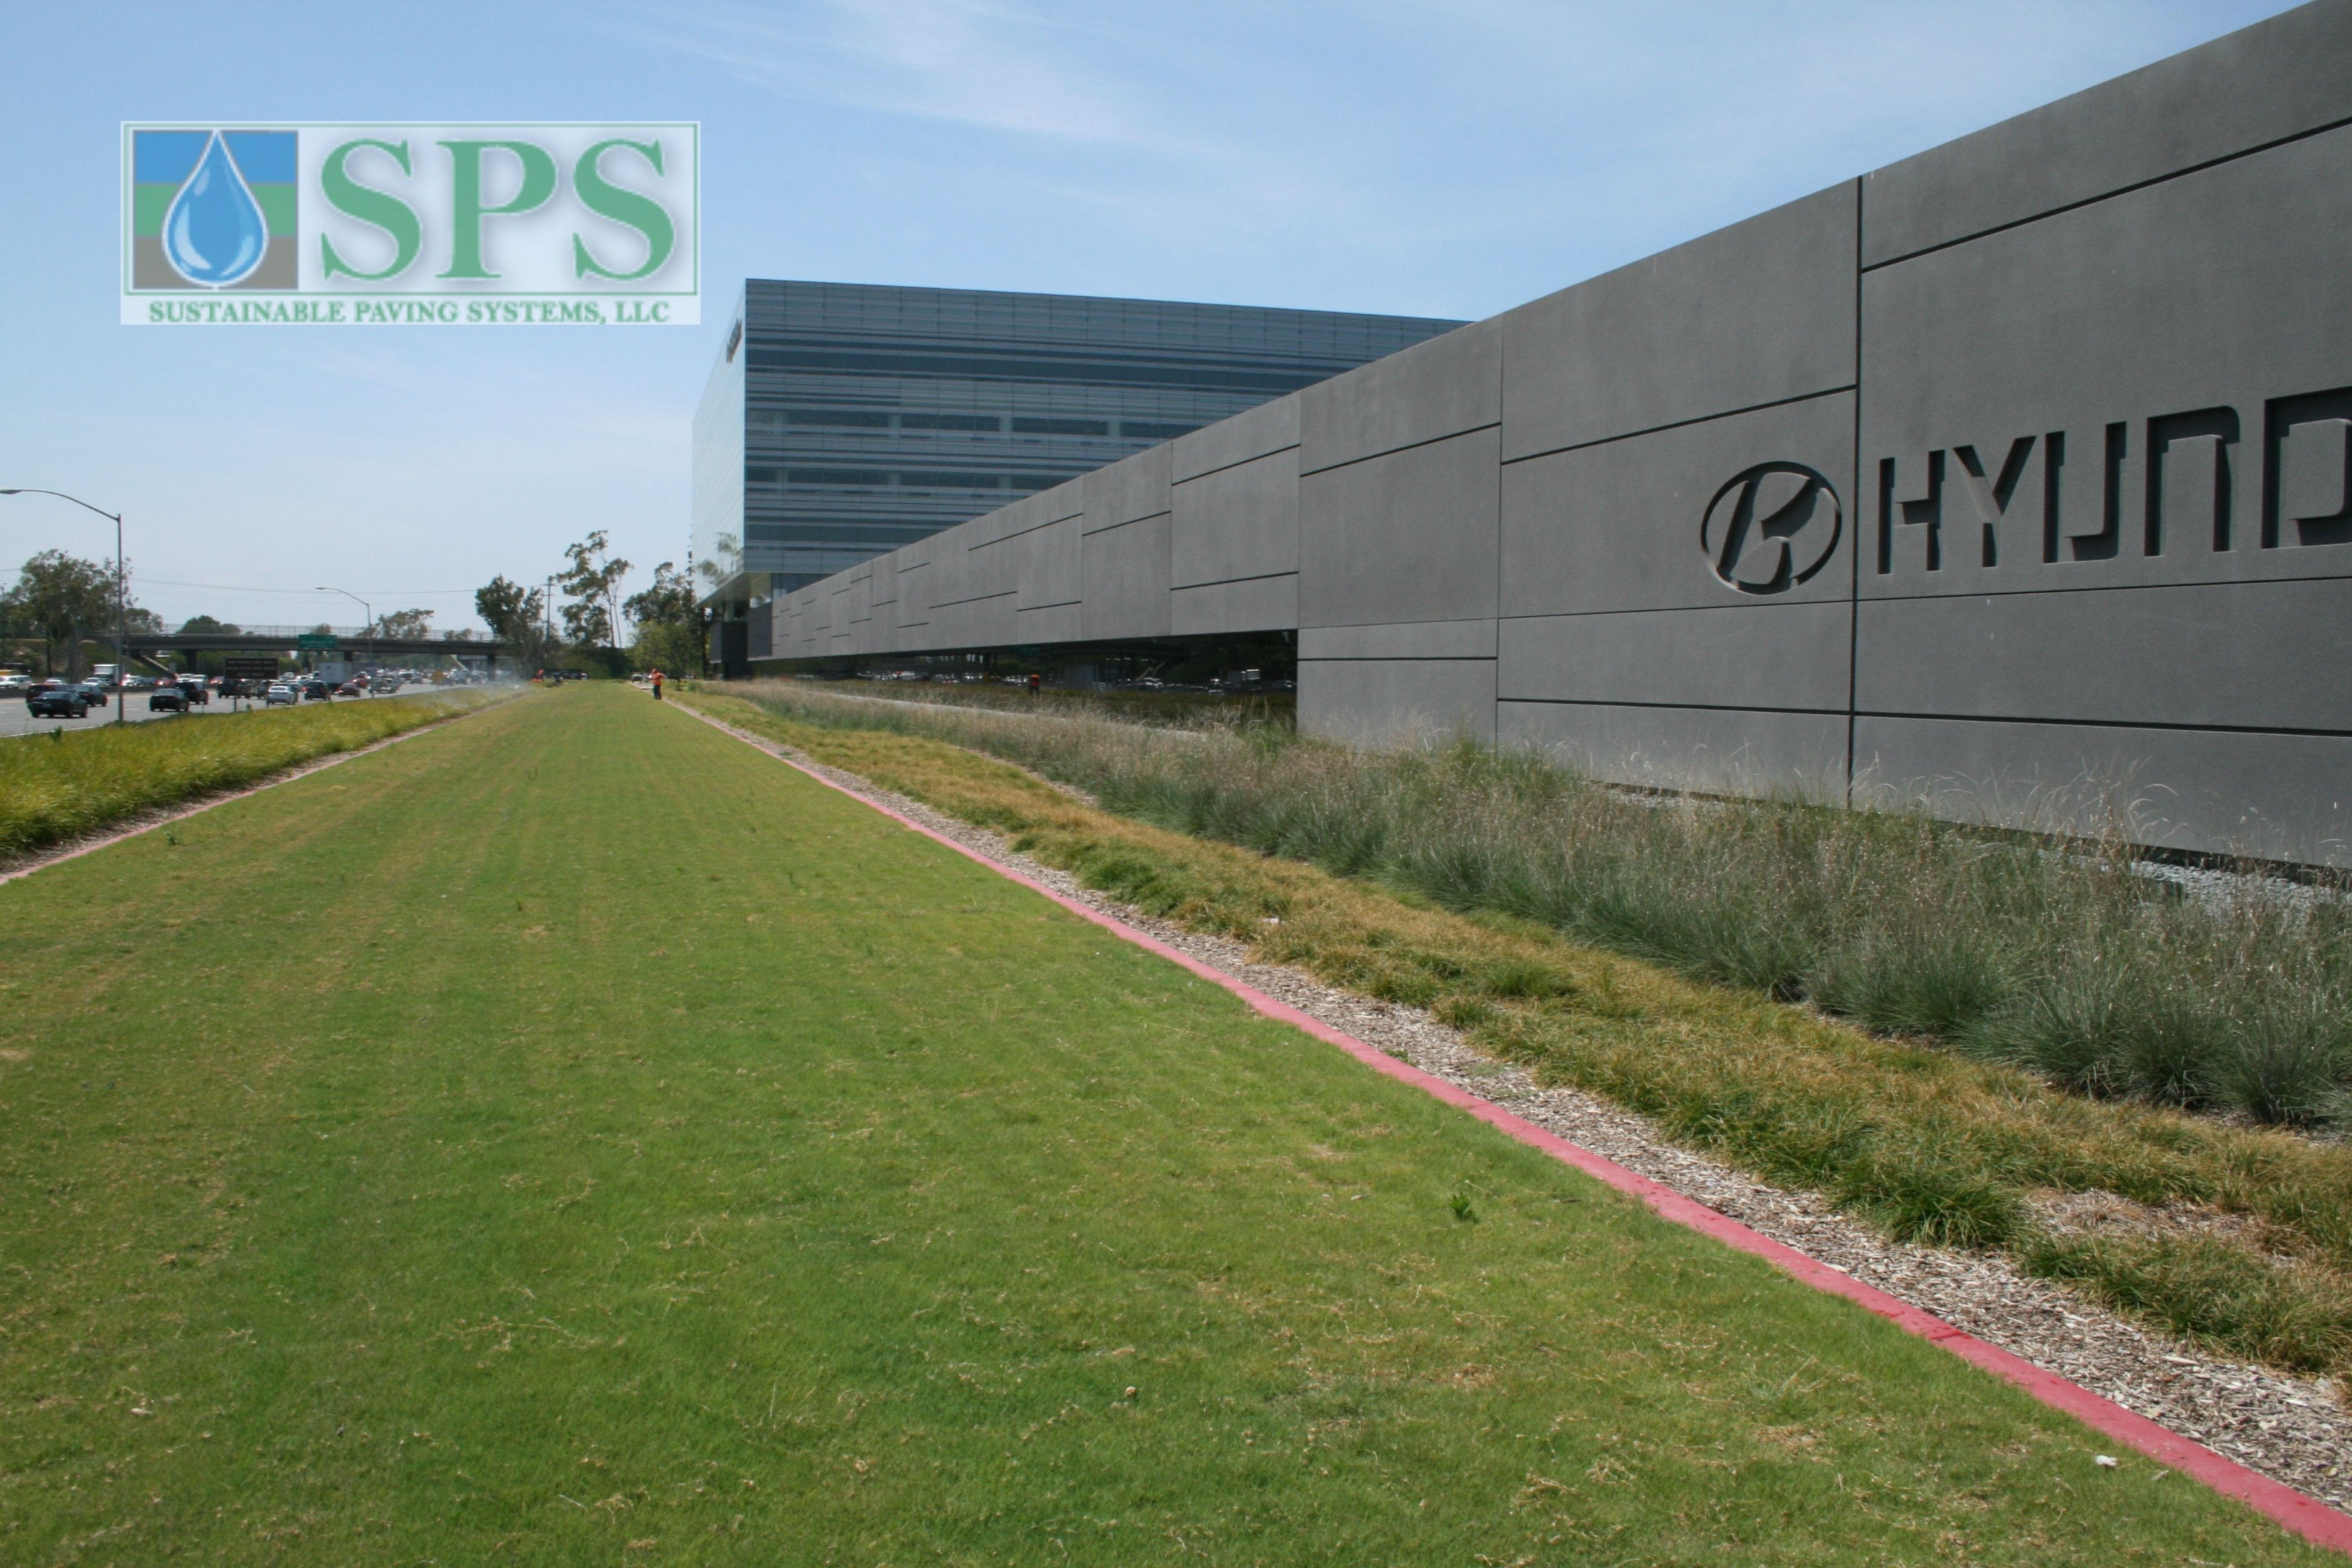 Grasscrete Partially Concealed System At Hyundai Motor America View Of Vehicle Acess Completed_4